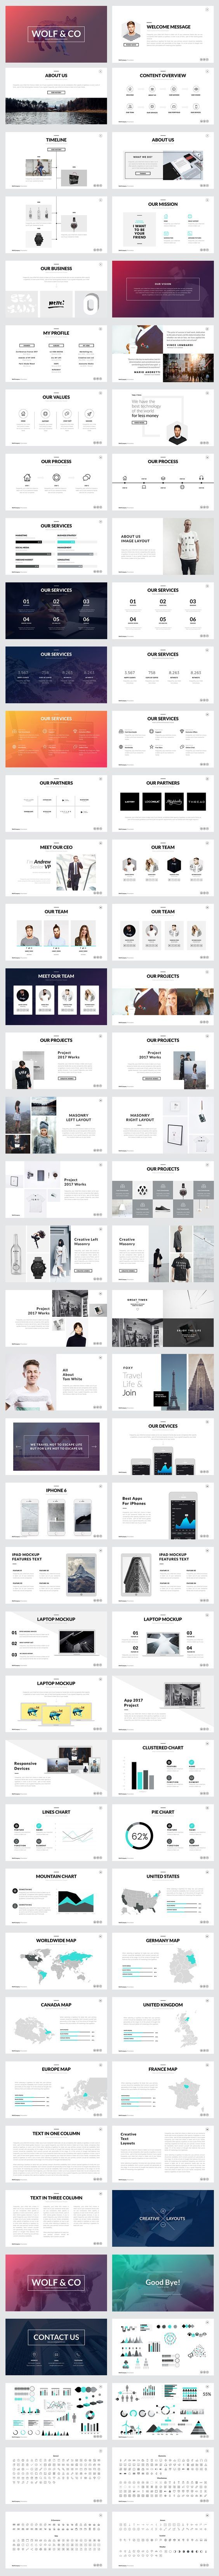 Wolf Minimal PowerPoint Template by Slidedizer on @creativemarket: